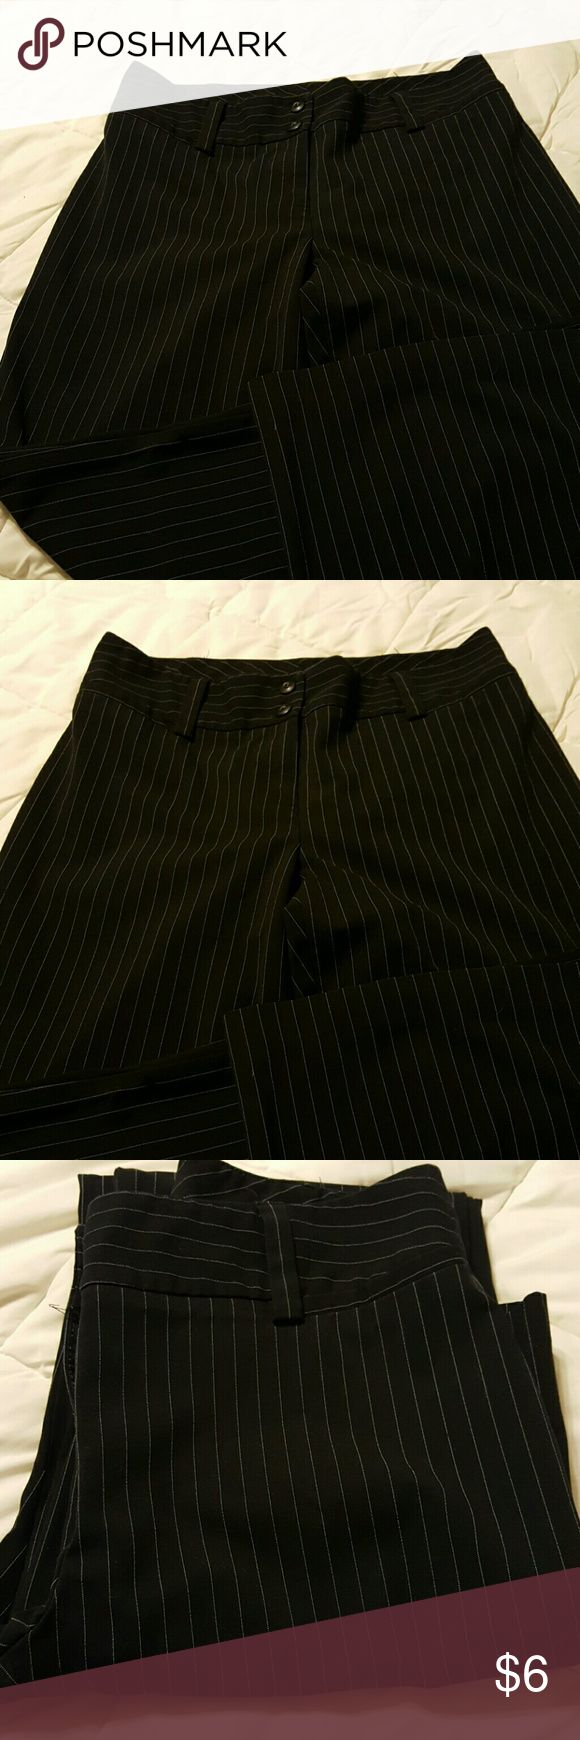 Black and white pinstripe slacks Black and white slacks. One hem needs to be sewn, otherwise fine condition. AB Studio Pants Trousers